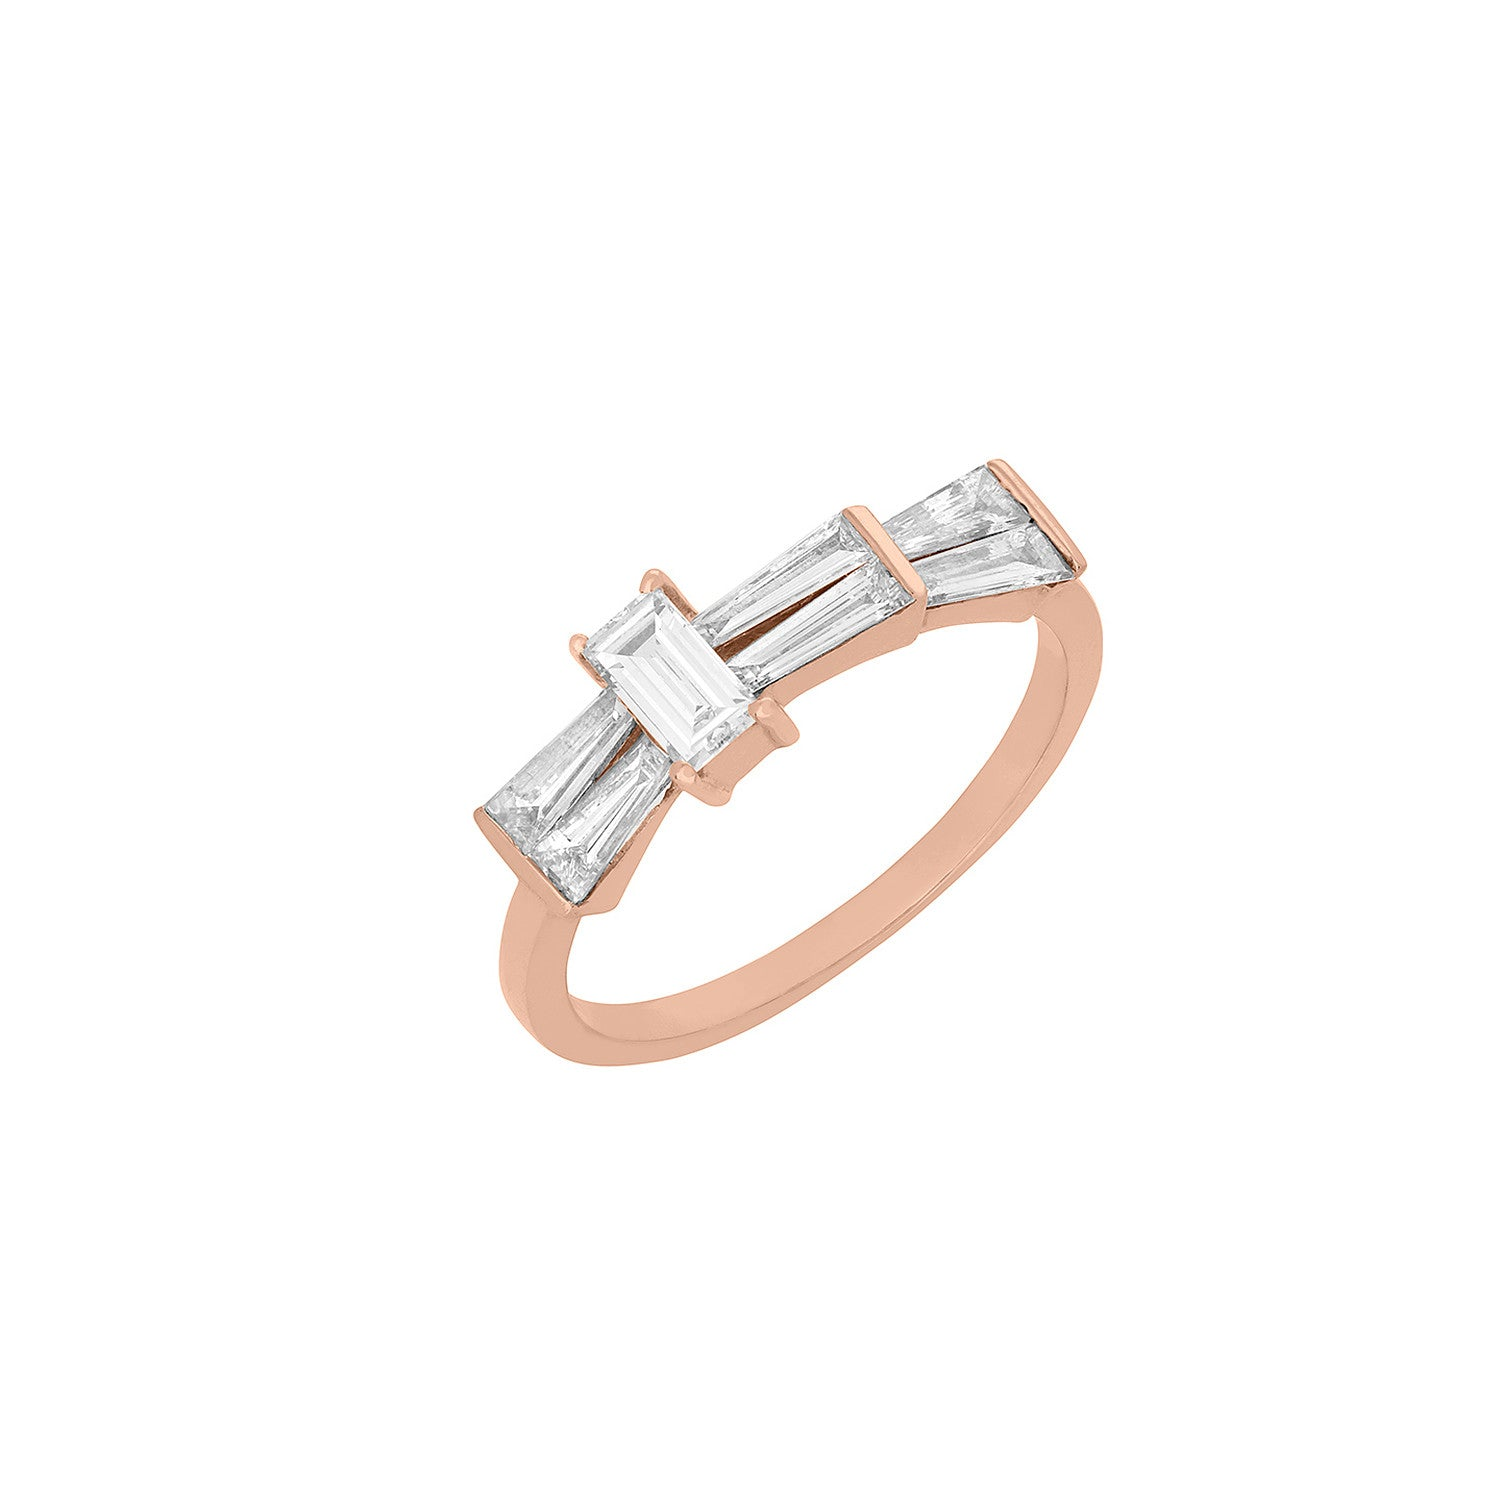 Delilah Diamond Baguette Ring